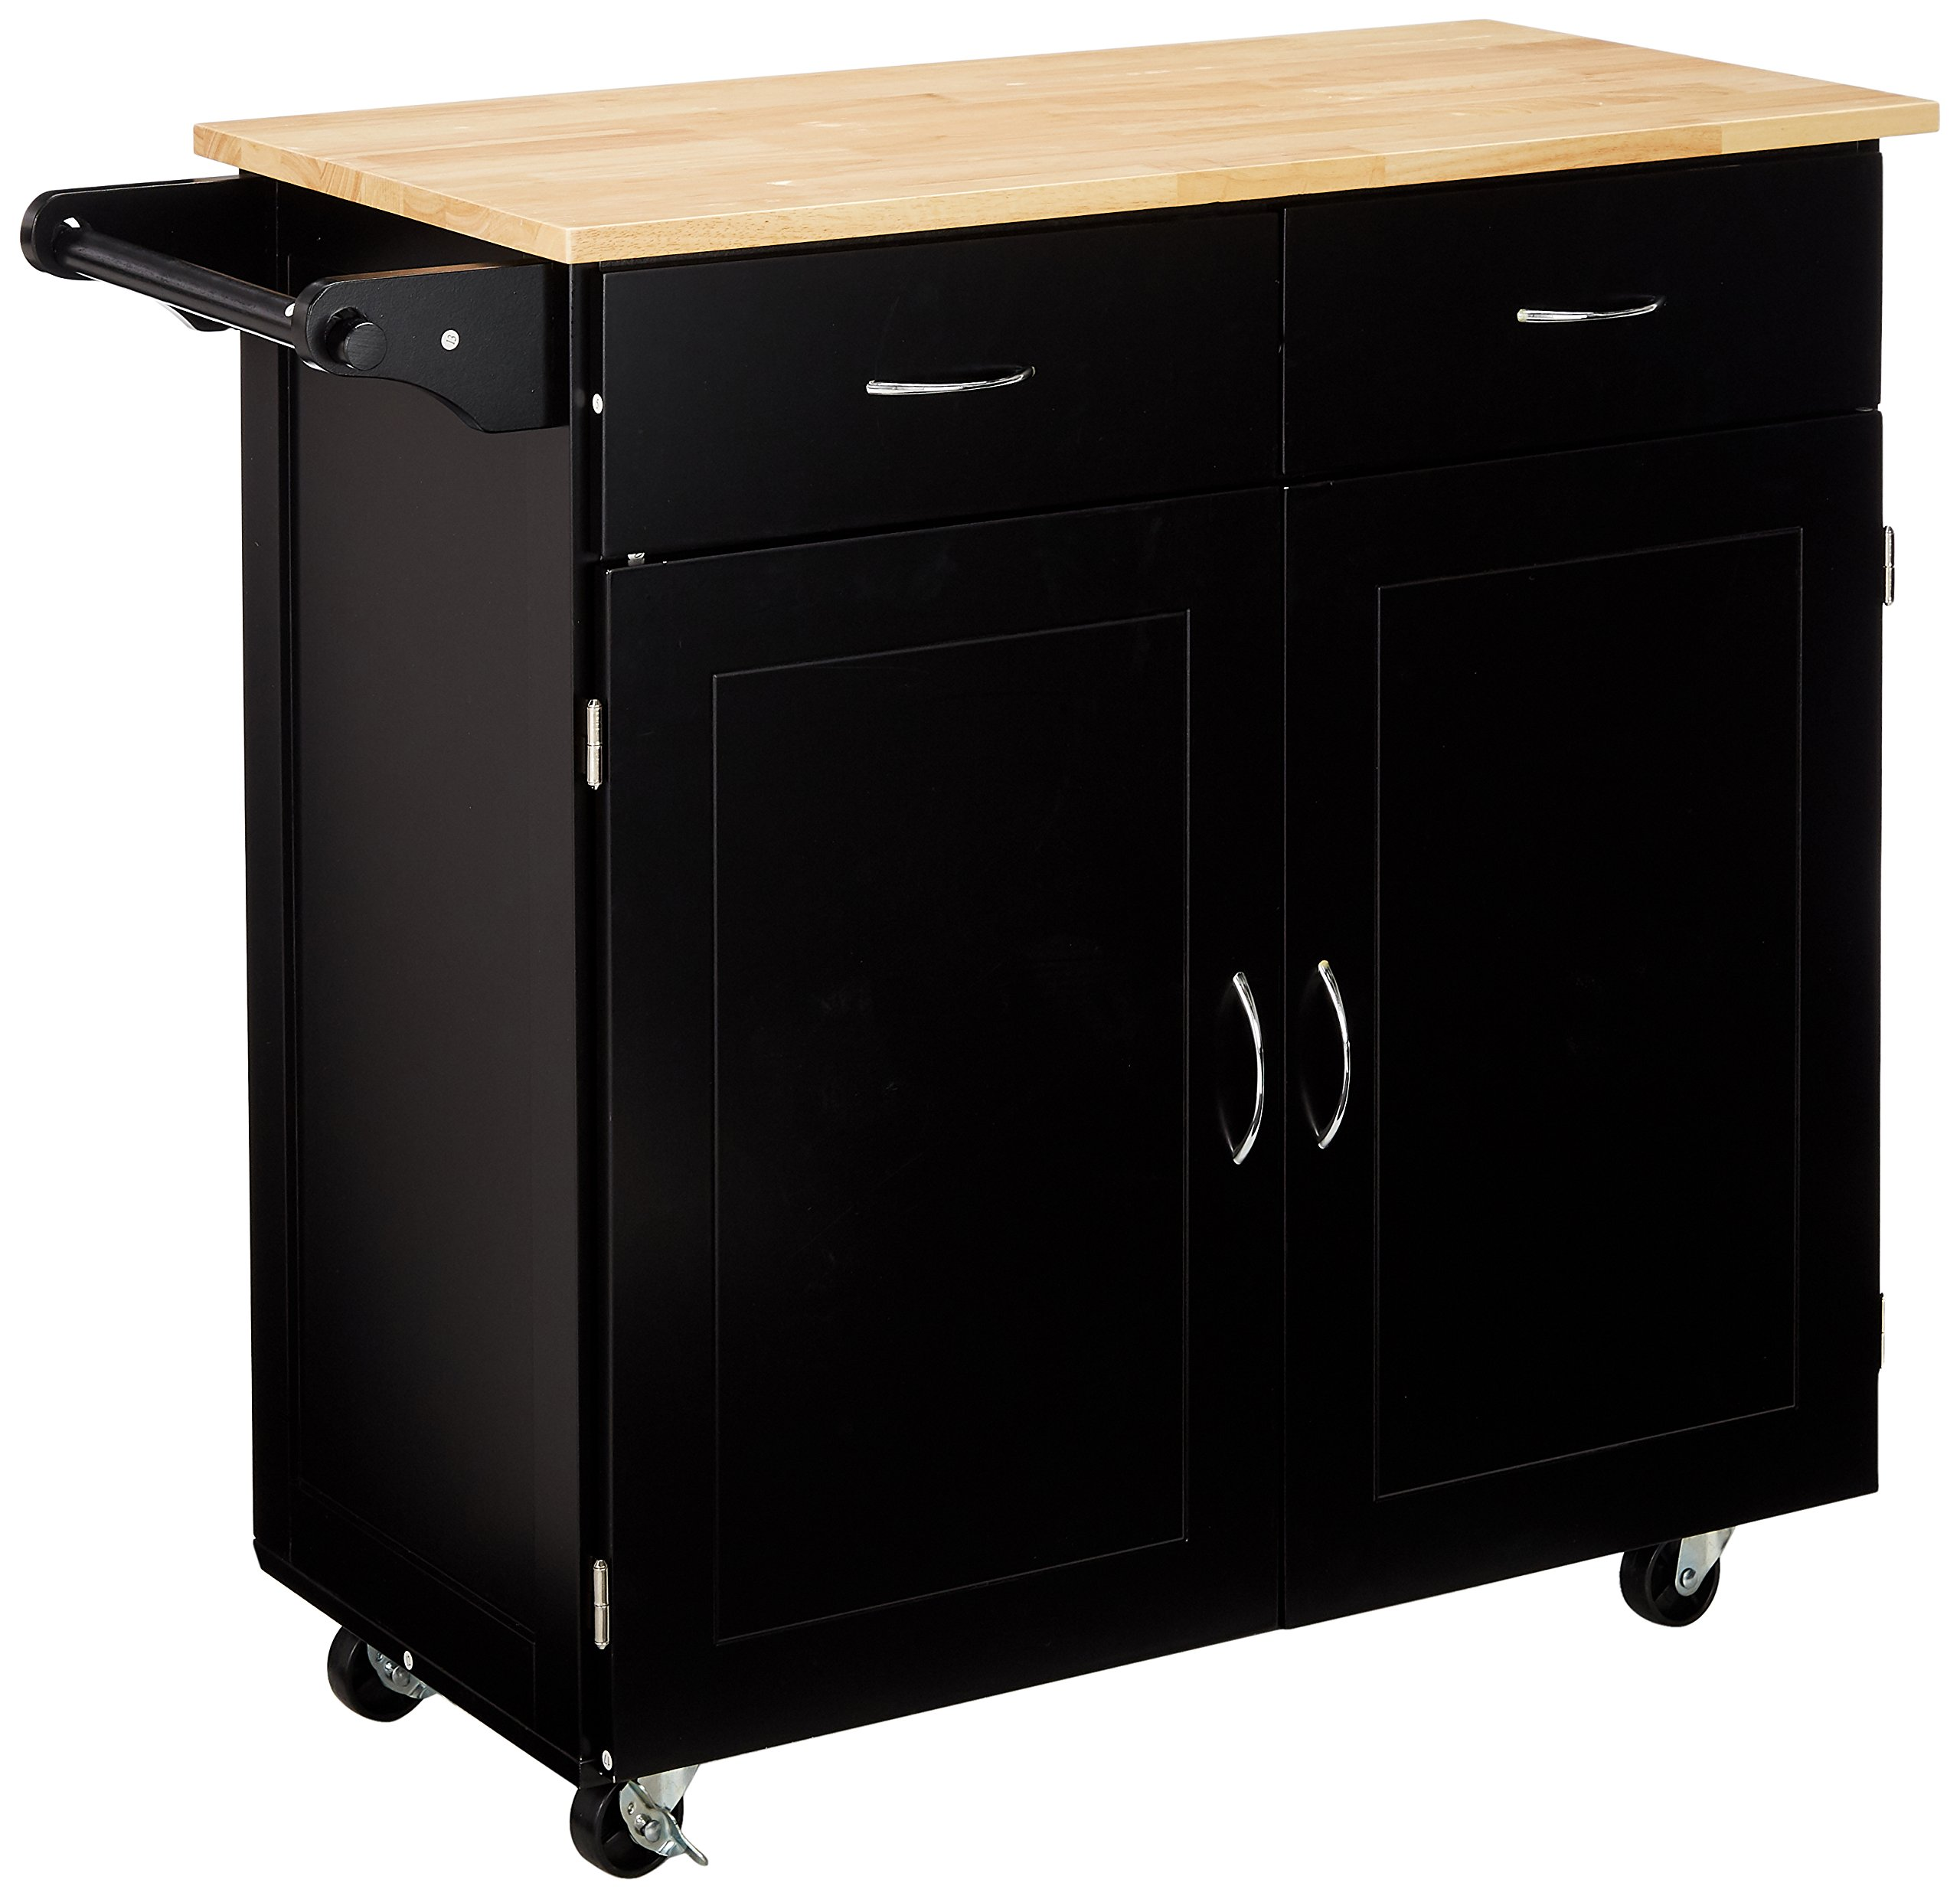 Target Marketing Systems Large Rolling Kitchen Cart with 2 Drawers, 1 Cabinet & Towel Rack, with Wood Top, Black